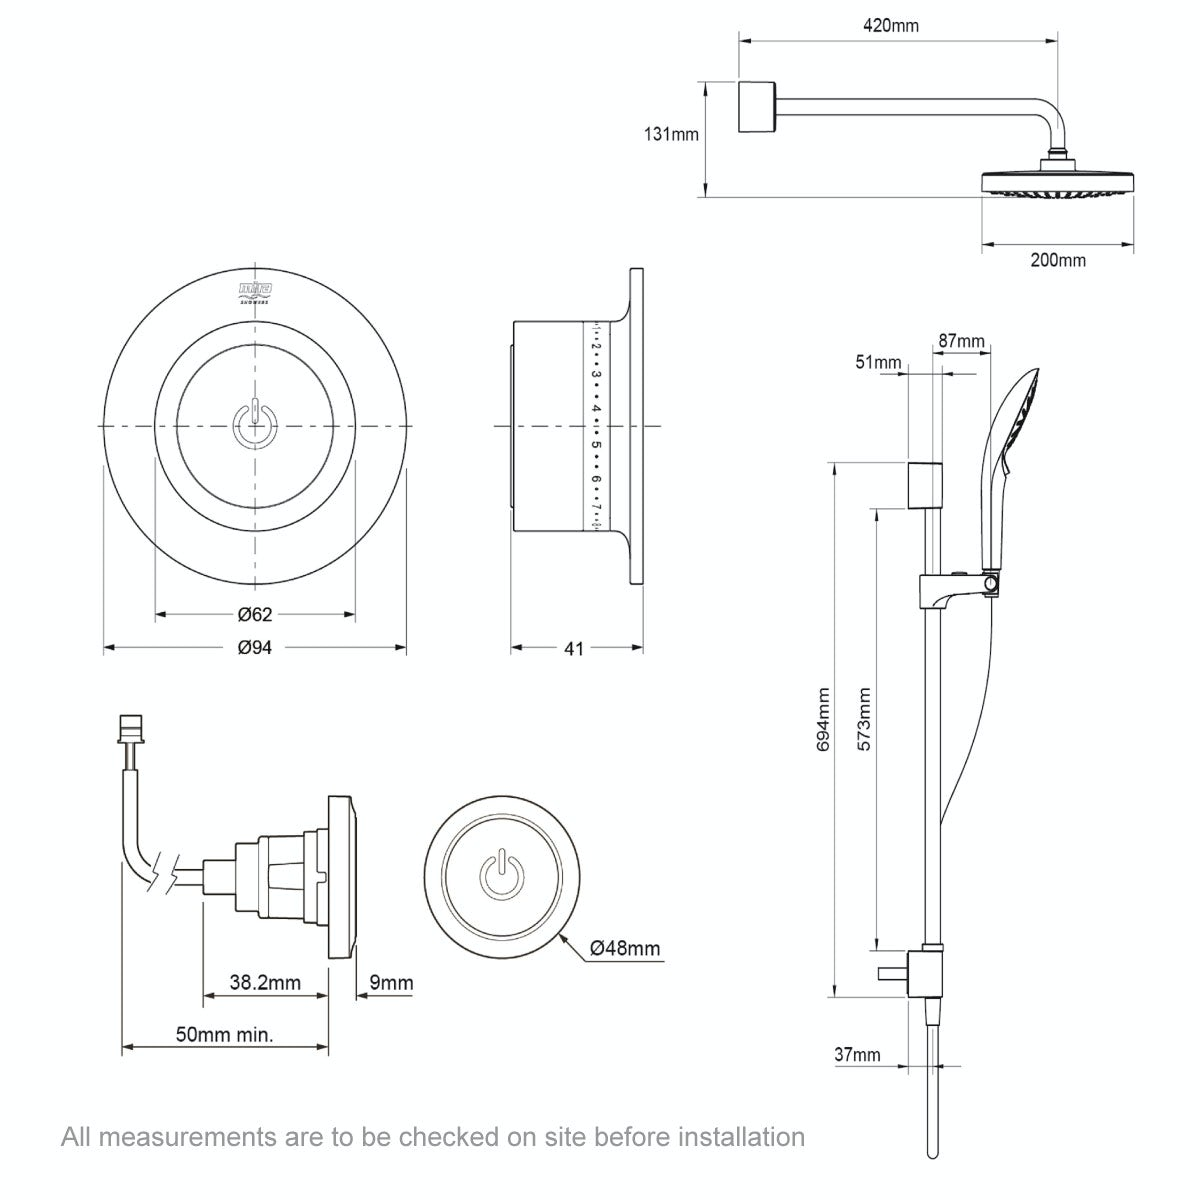 Dimensions for Mira Mode dual rear fed digital shower pumped